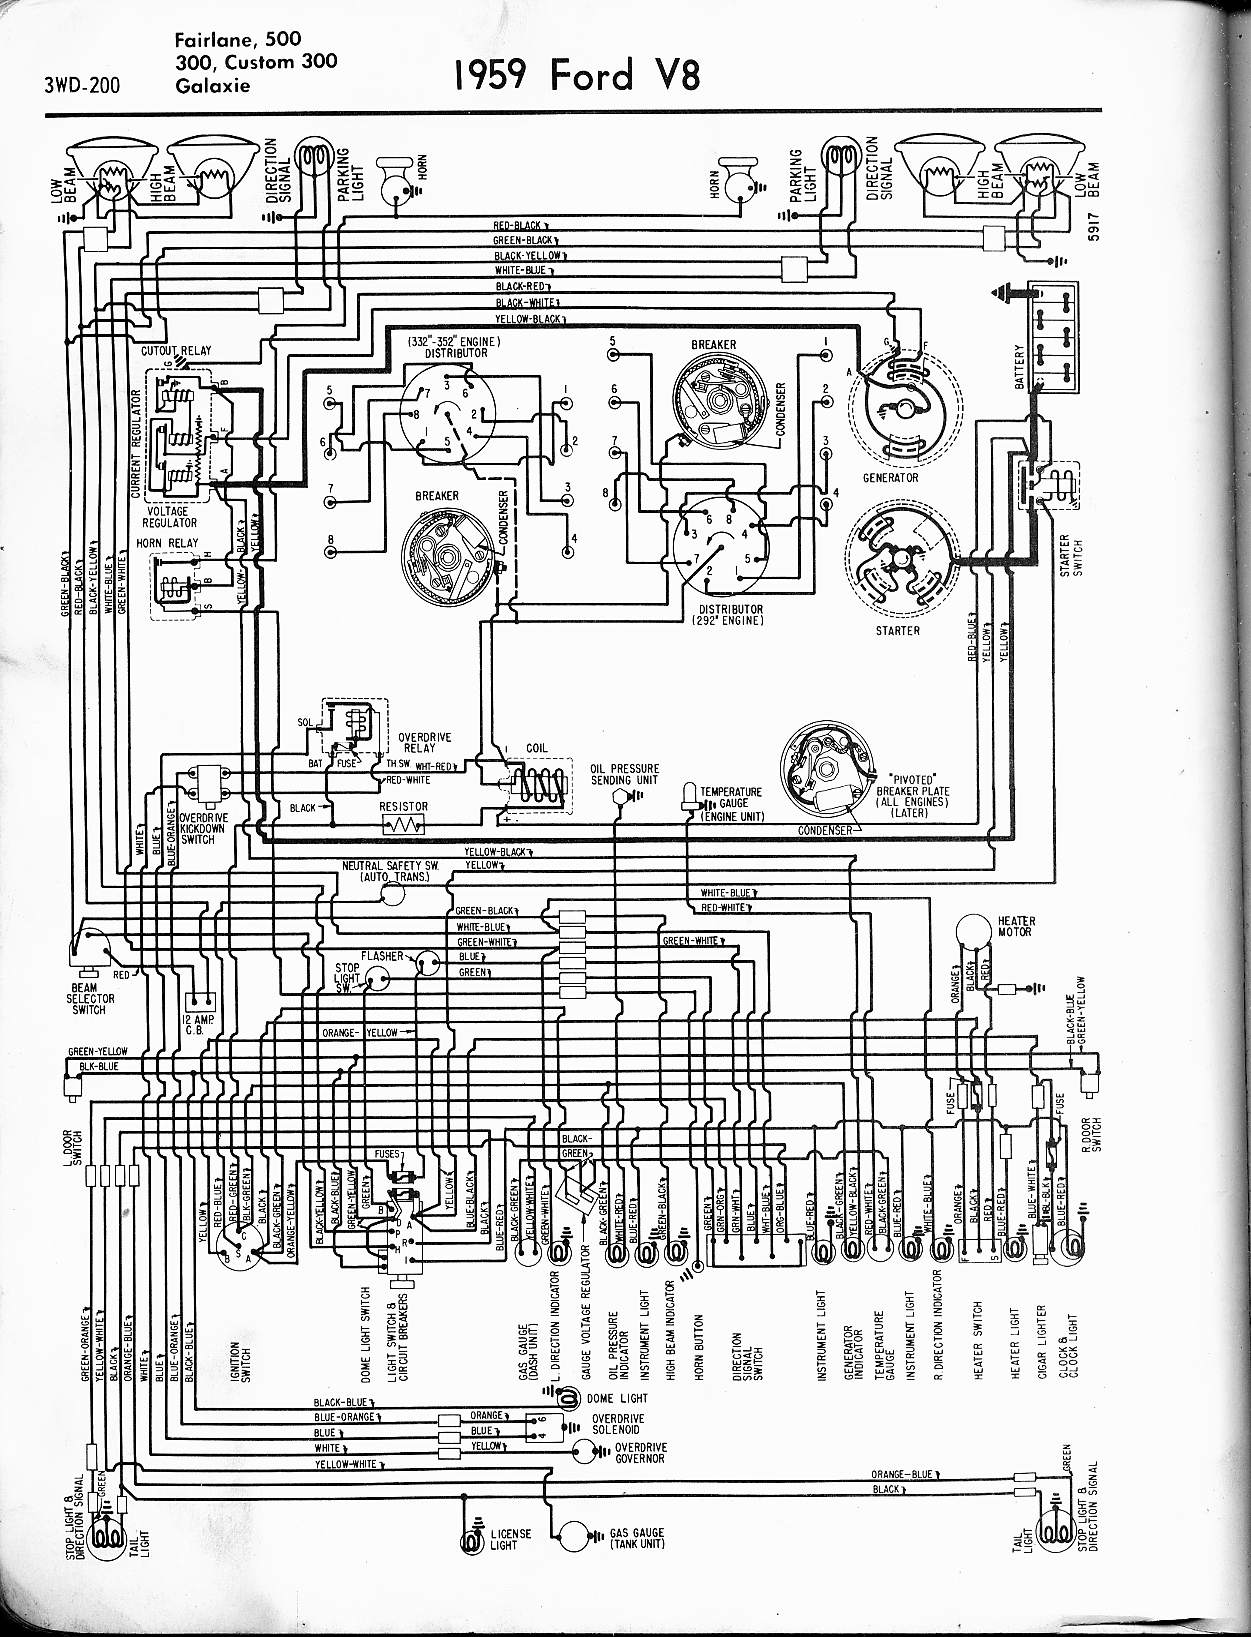 MWire5765 200 100 [ wiring diagram of car signal light ] 57 65 ford wiring ford wiring diagrams at bayanpartner.co